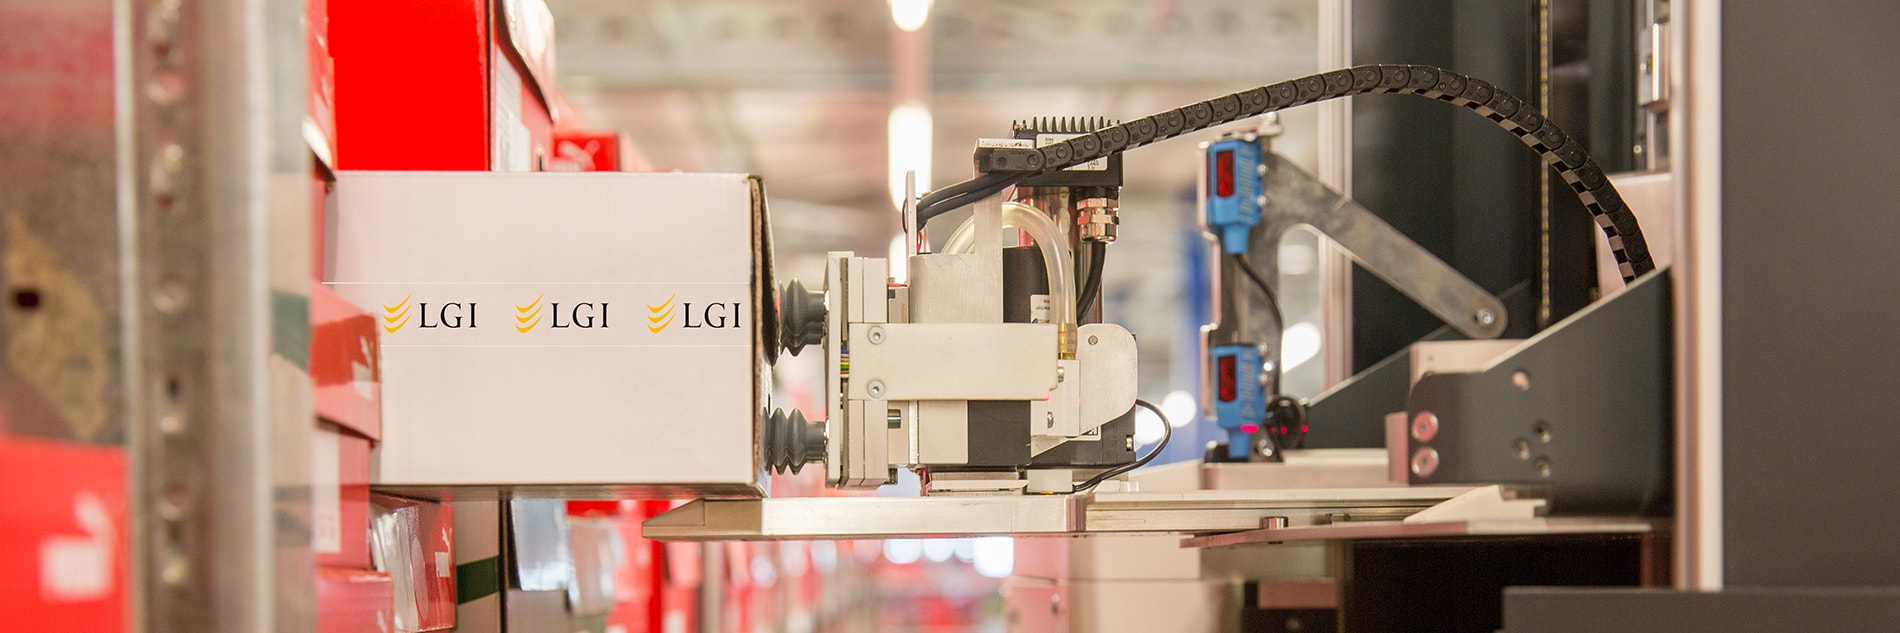 Industry 4.0 in action - LGI